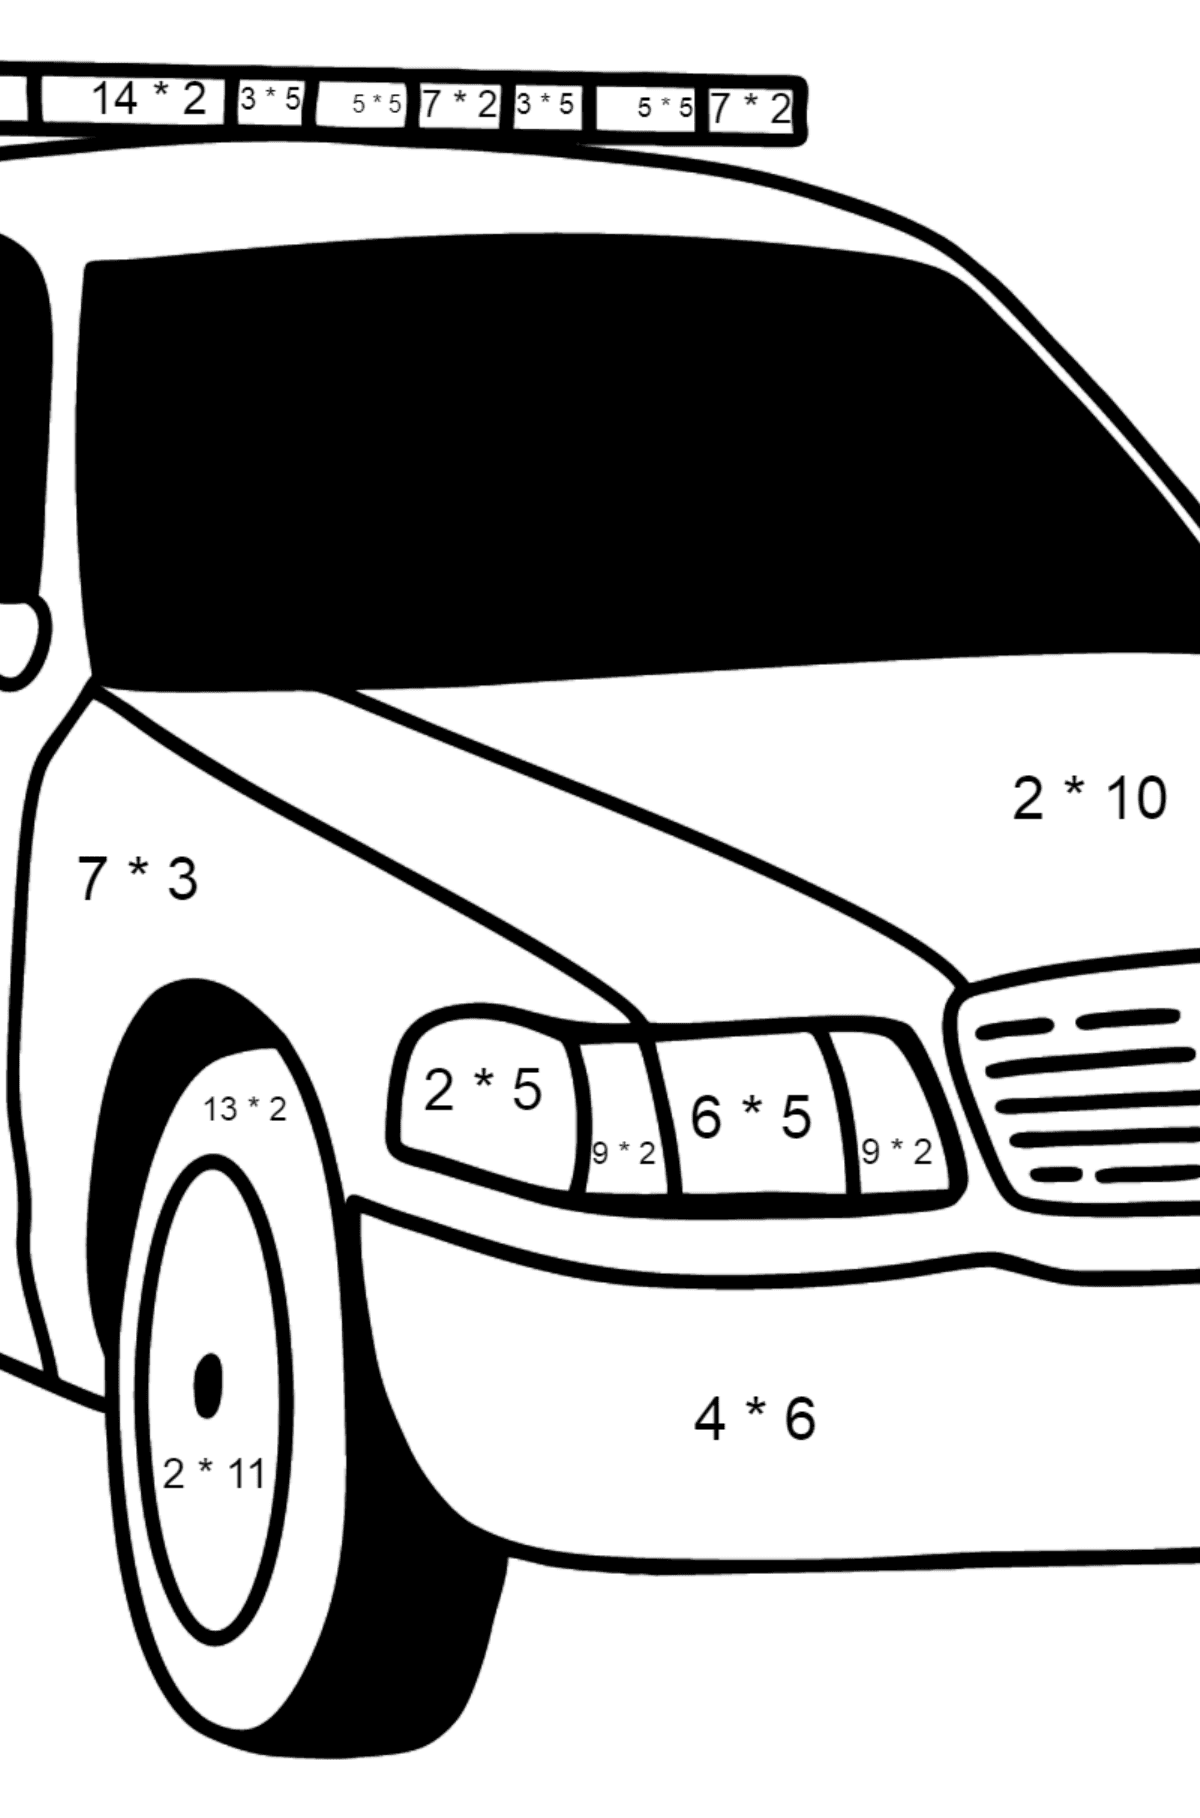 US Police Car coloring page - Math Coloring - Multiplication for Kids